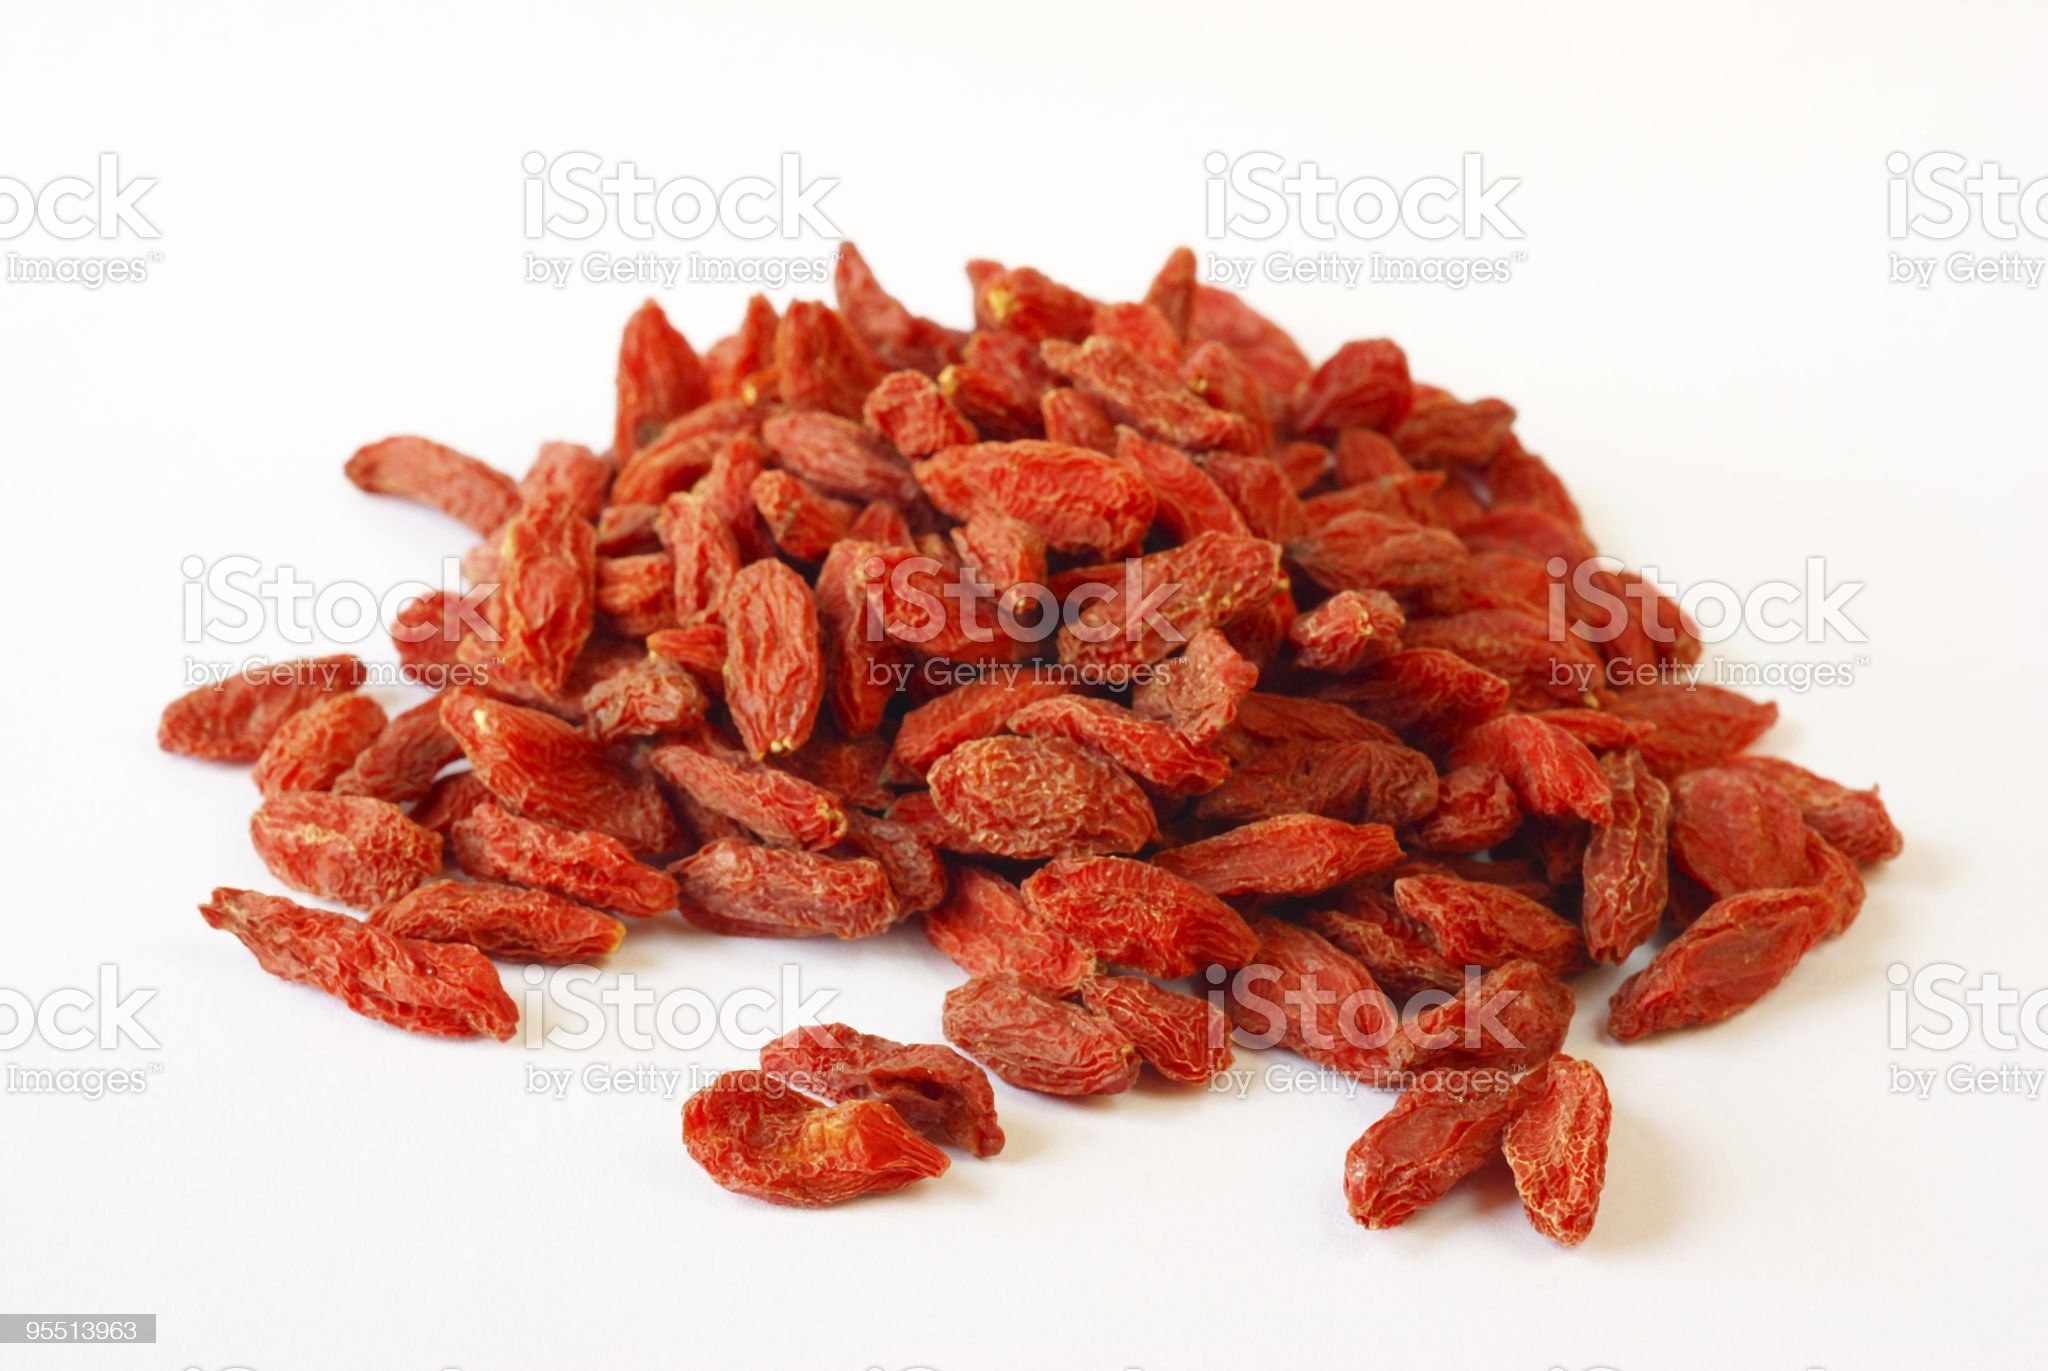 Wolf berries in a pile on white royalty-free stock photo